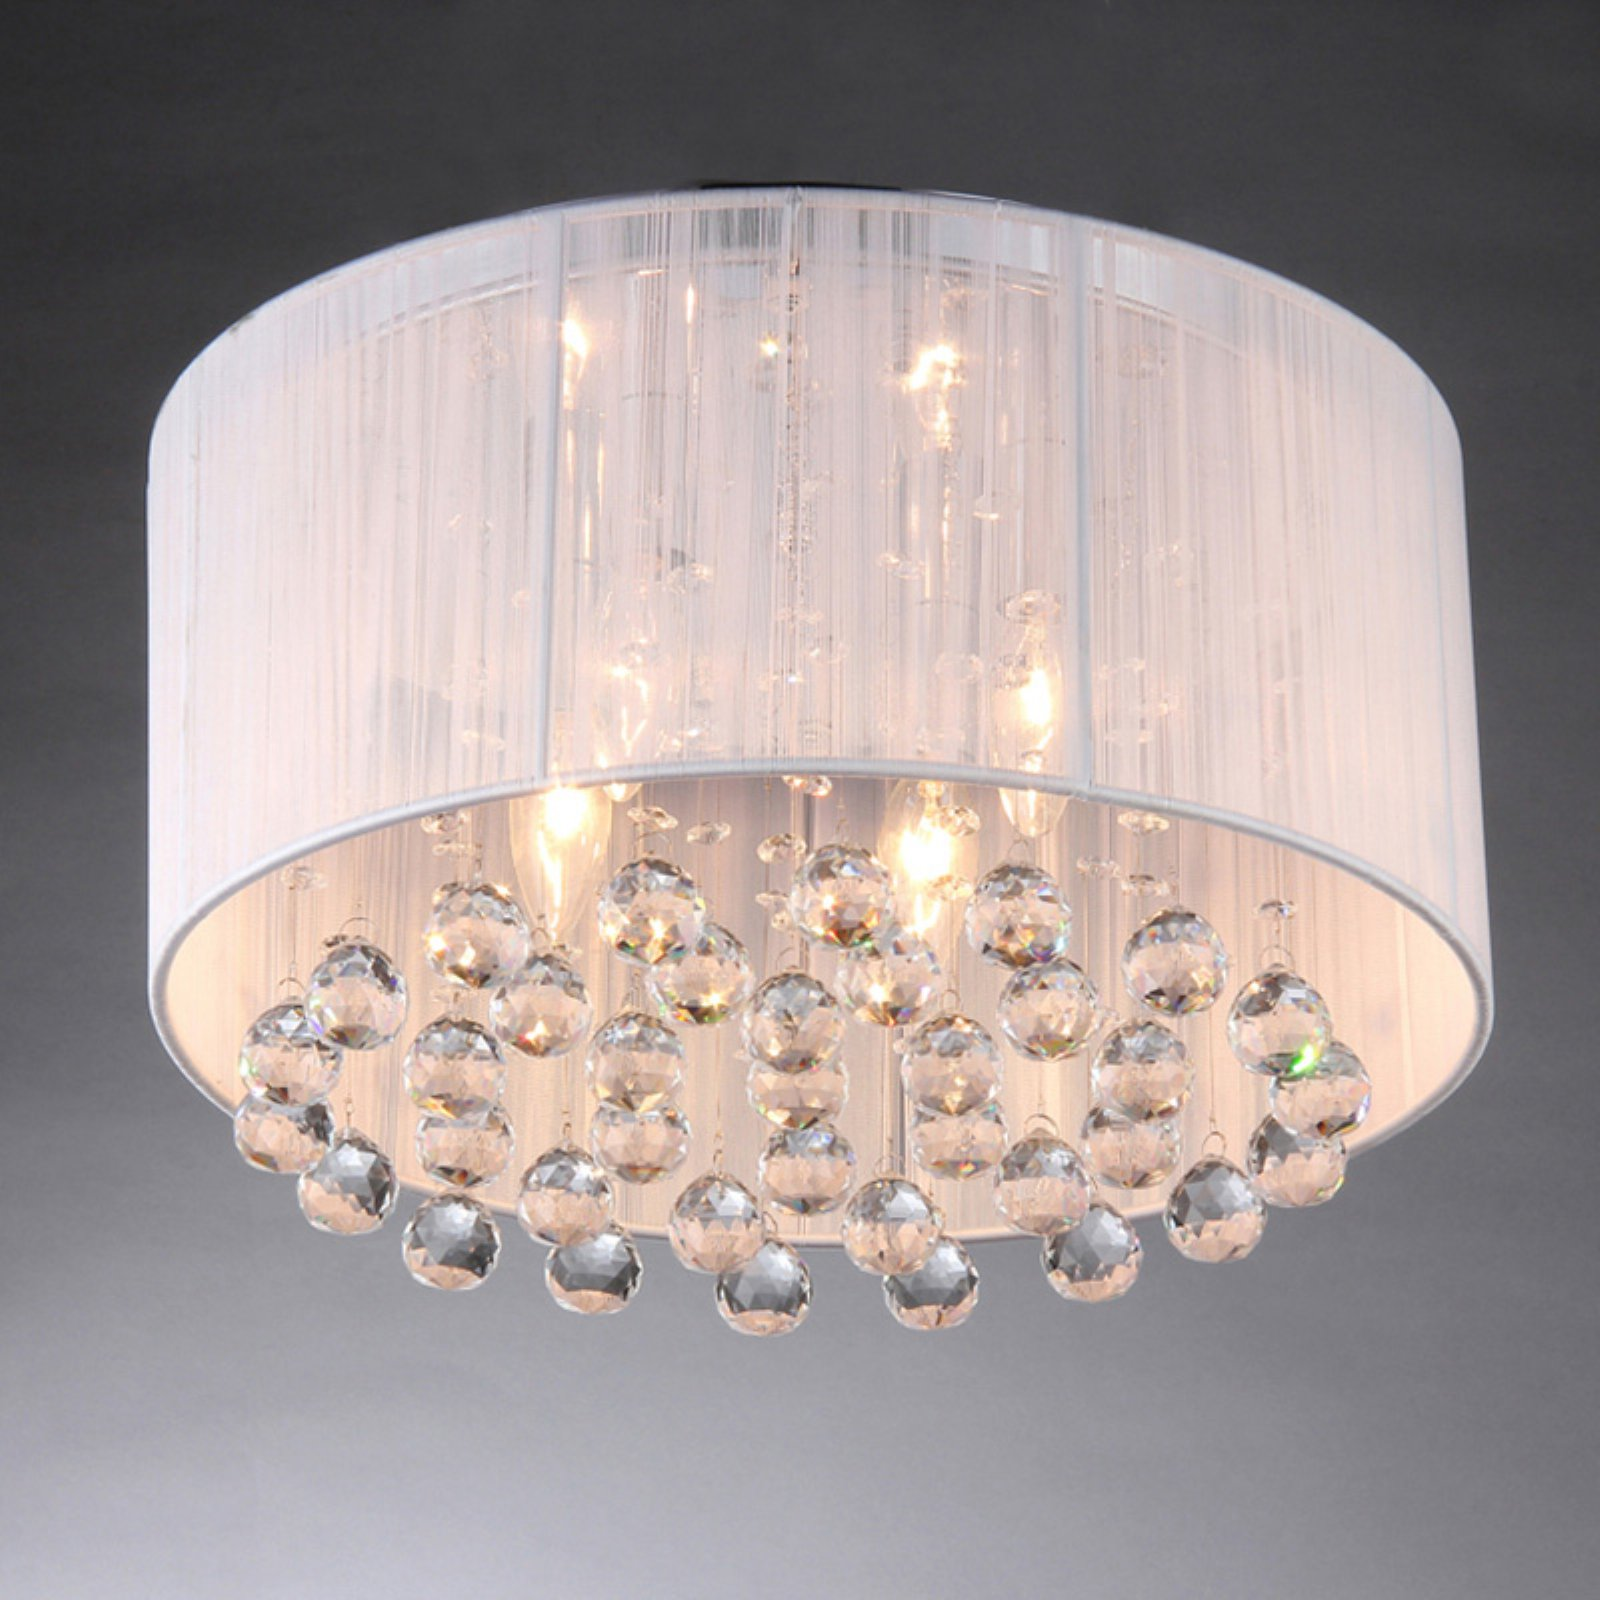 Warehouse of Tiffany Optimus RL8057 Chandelier by Supplier Generic